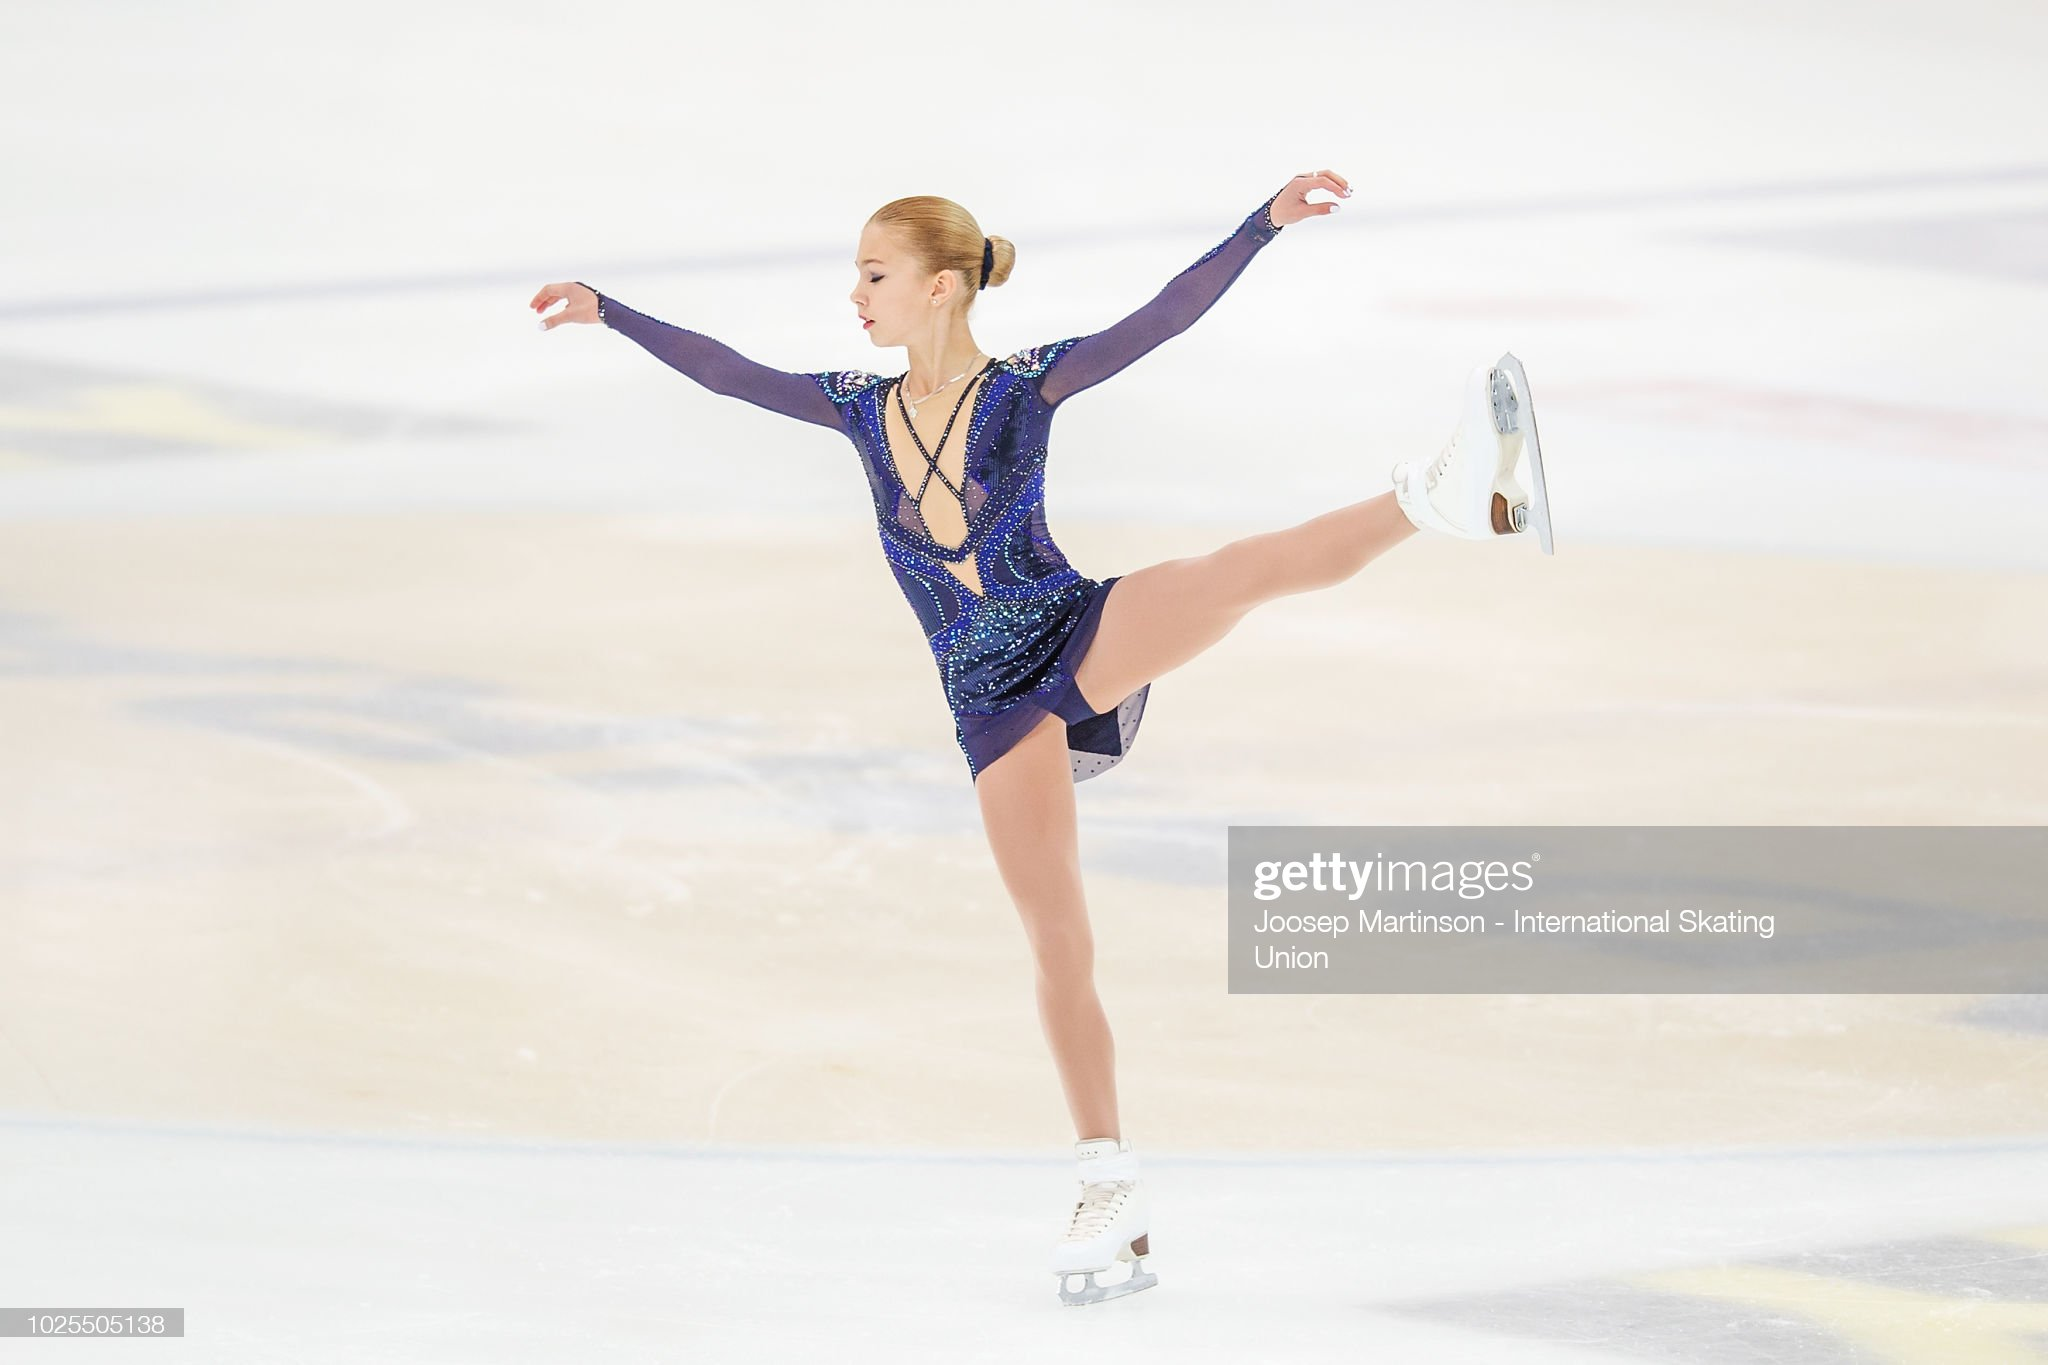 https://media.gettyimages.com/photos/alena-kanysheva-of-russia-competes-in-the-junior-ladies-short-program-picture-id1025505138?s=2048x2048